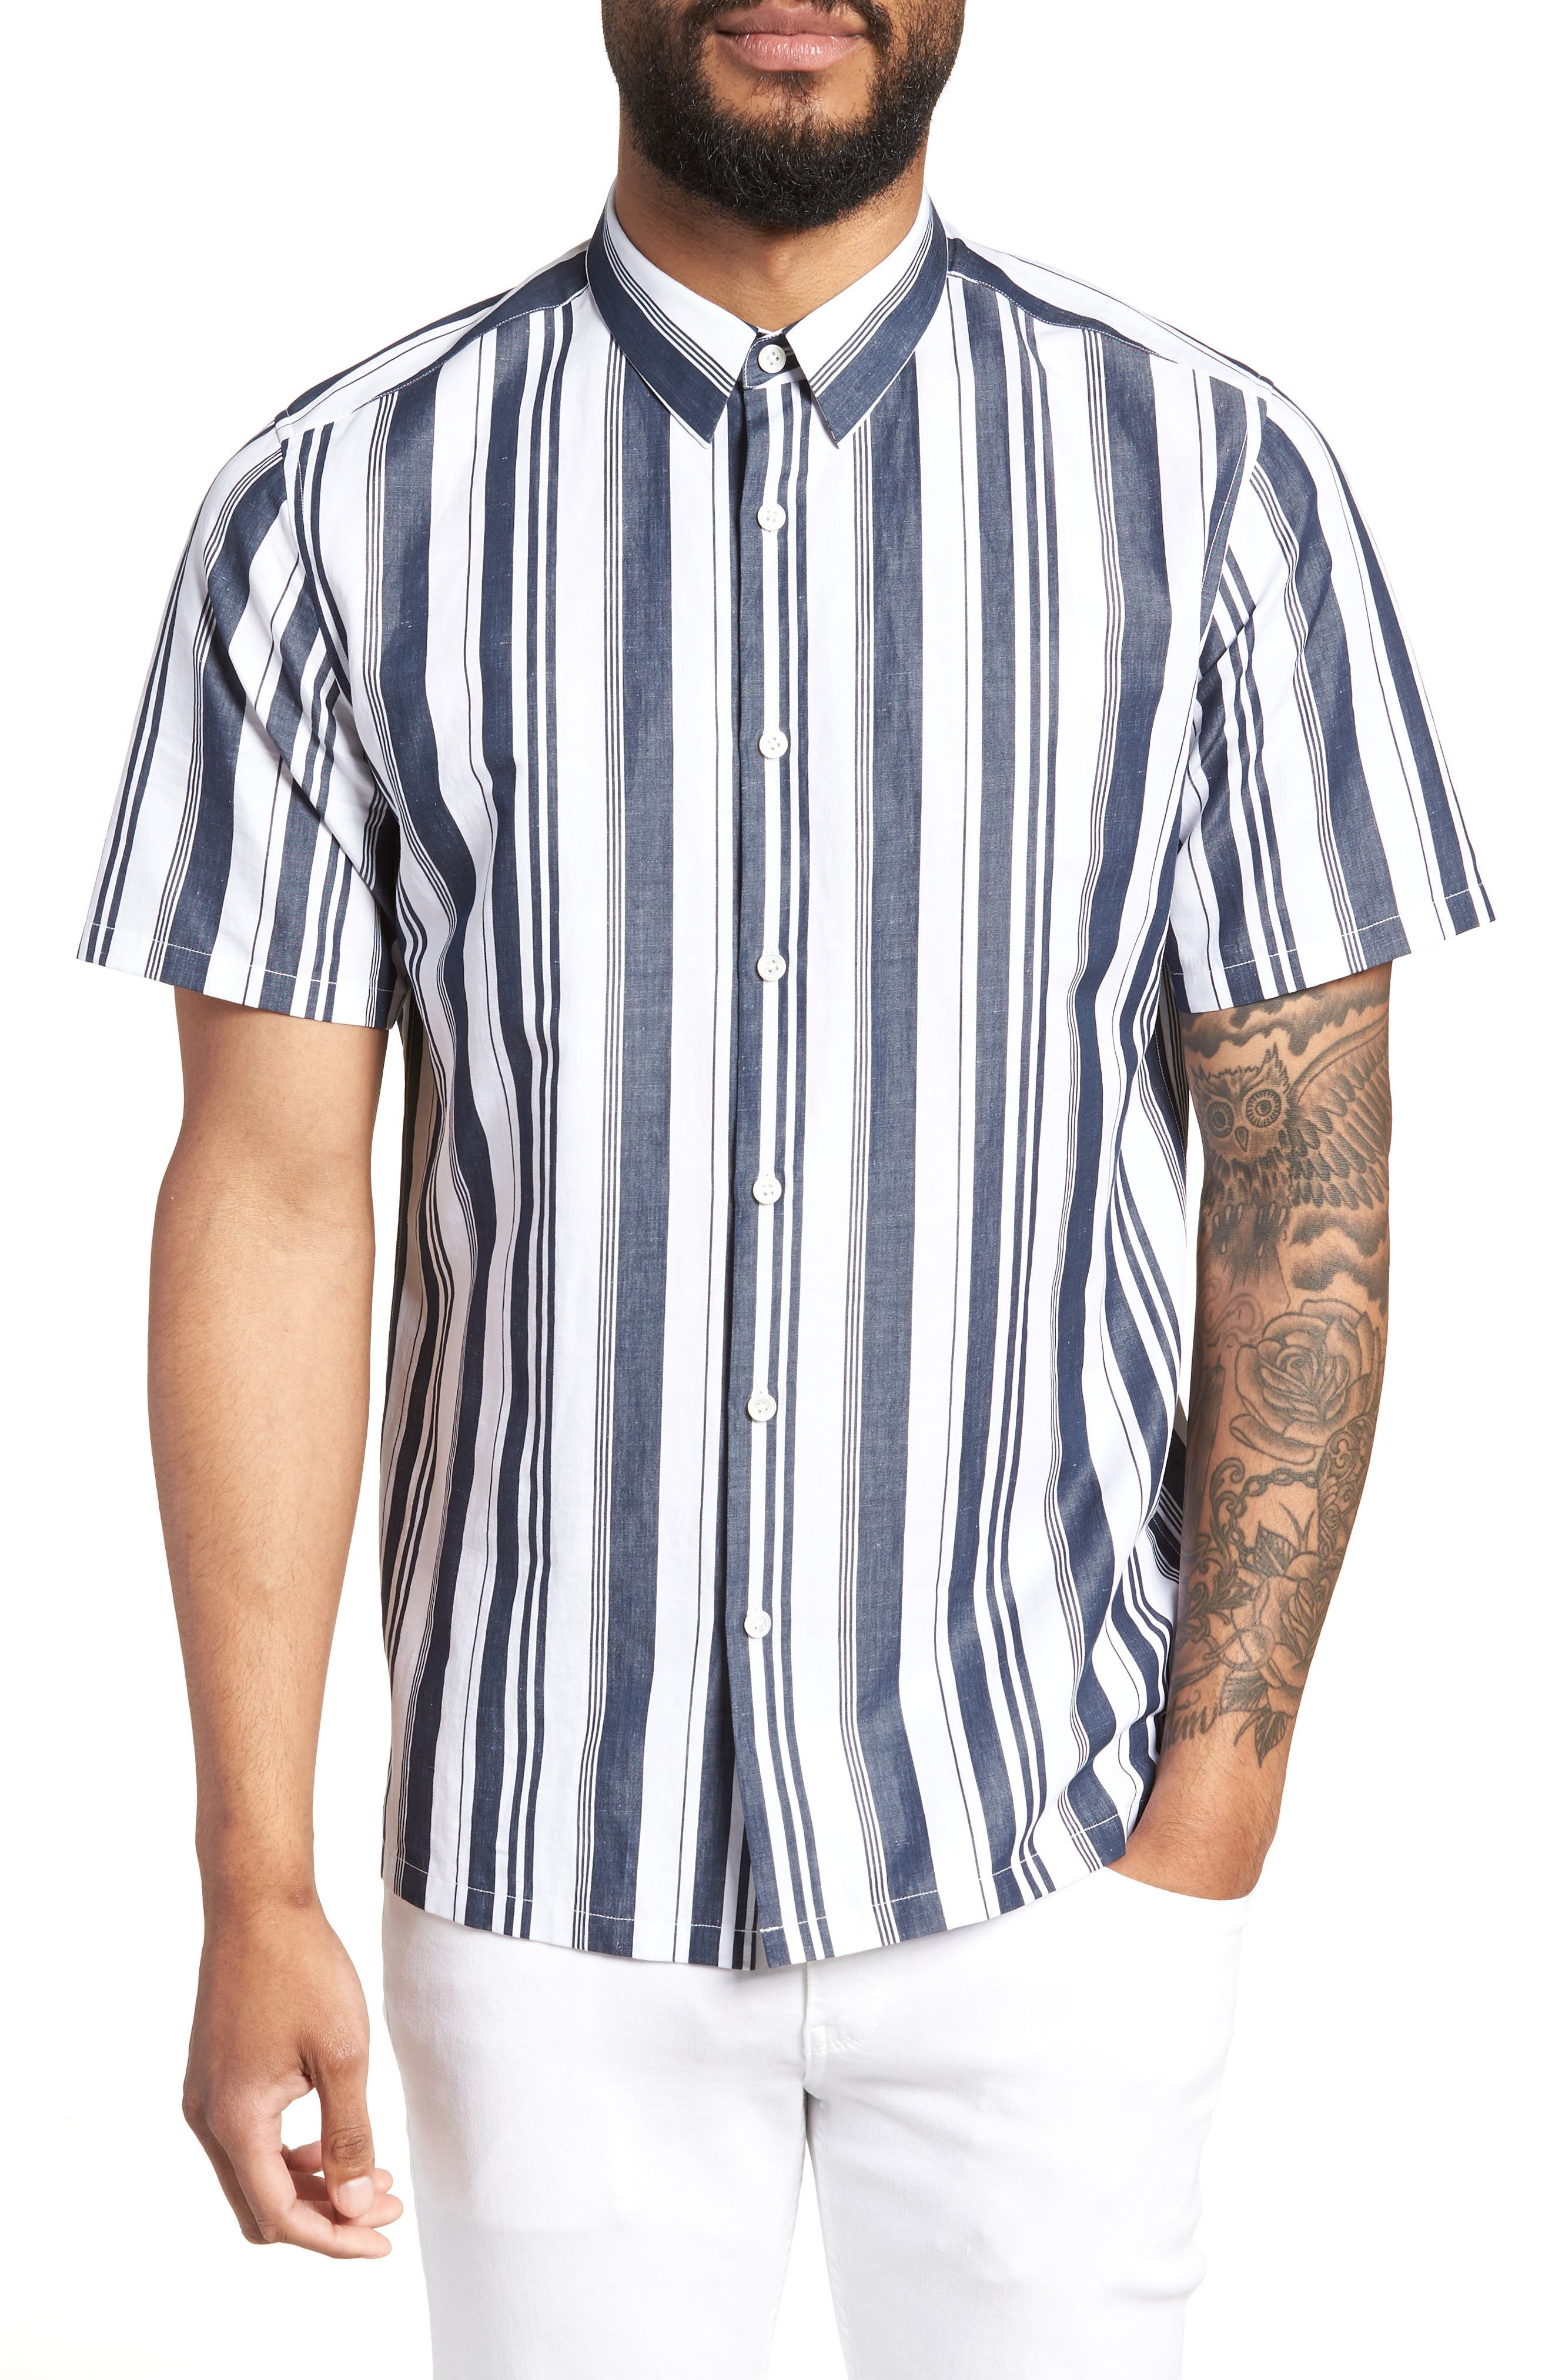 Cheap Sale 2018 New Theory Irving Trim Fit Stripe Cotton & Linen Sport Shirt On Hot Sale Sast For Sale Discount Factory Outlet 0ALfQ3cFT6